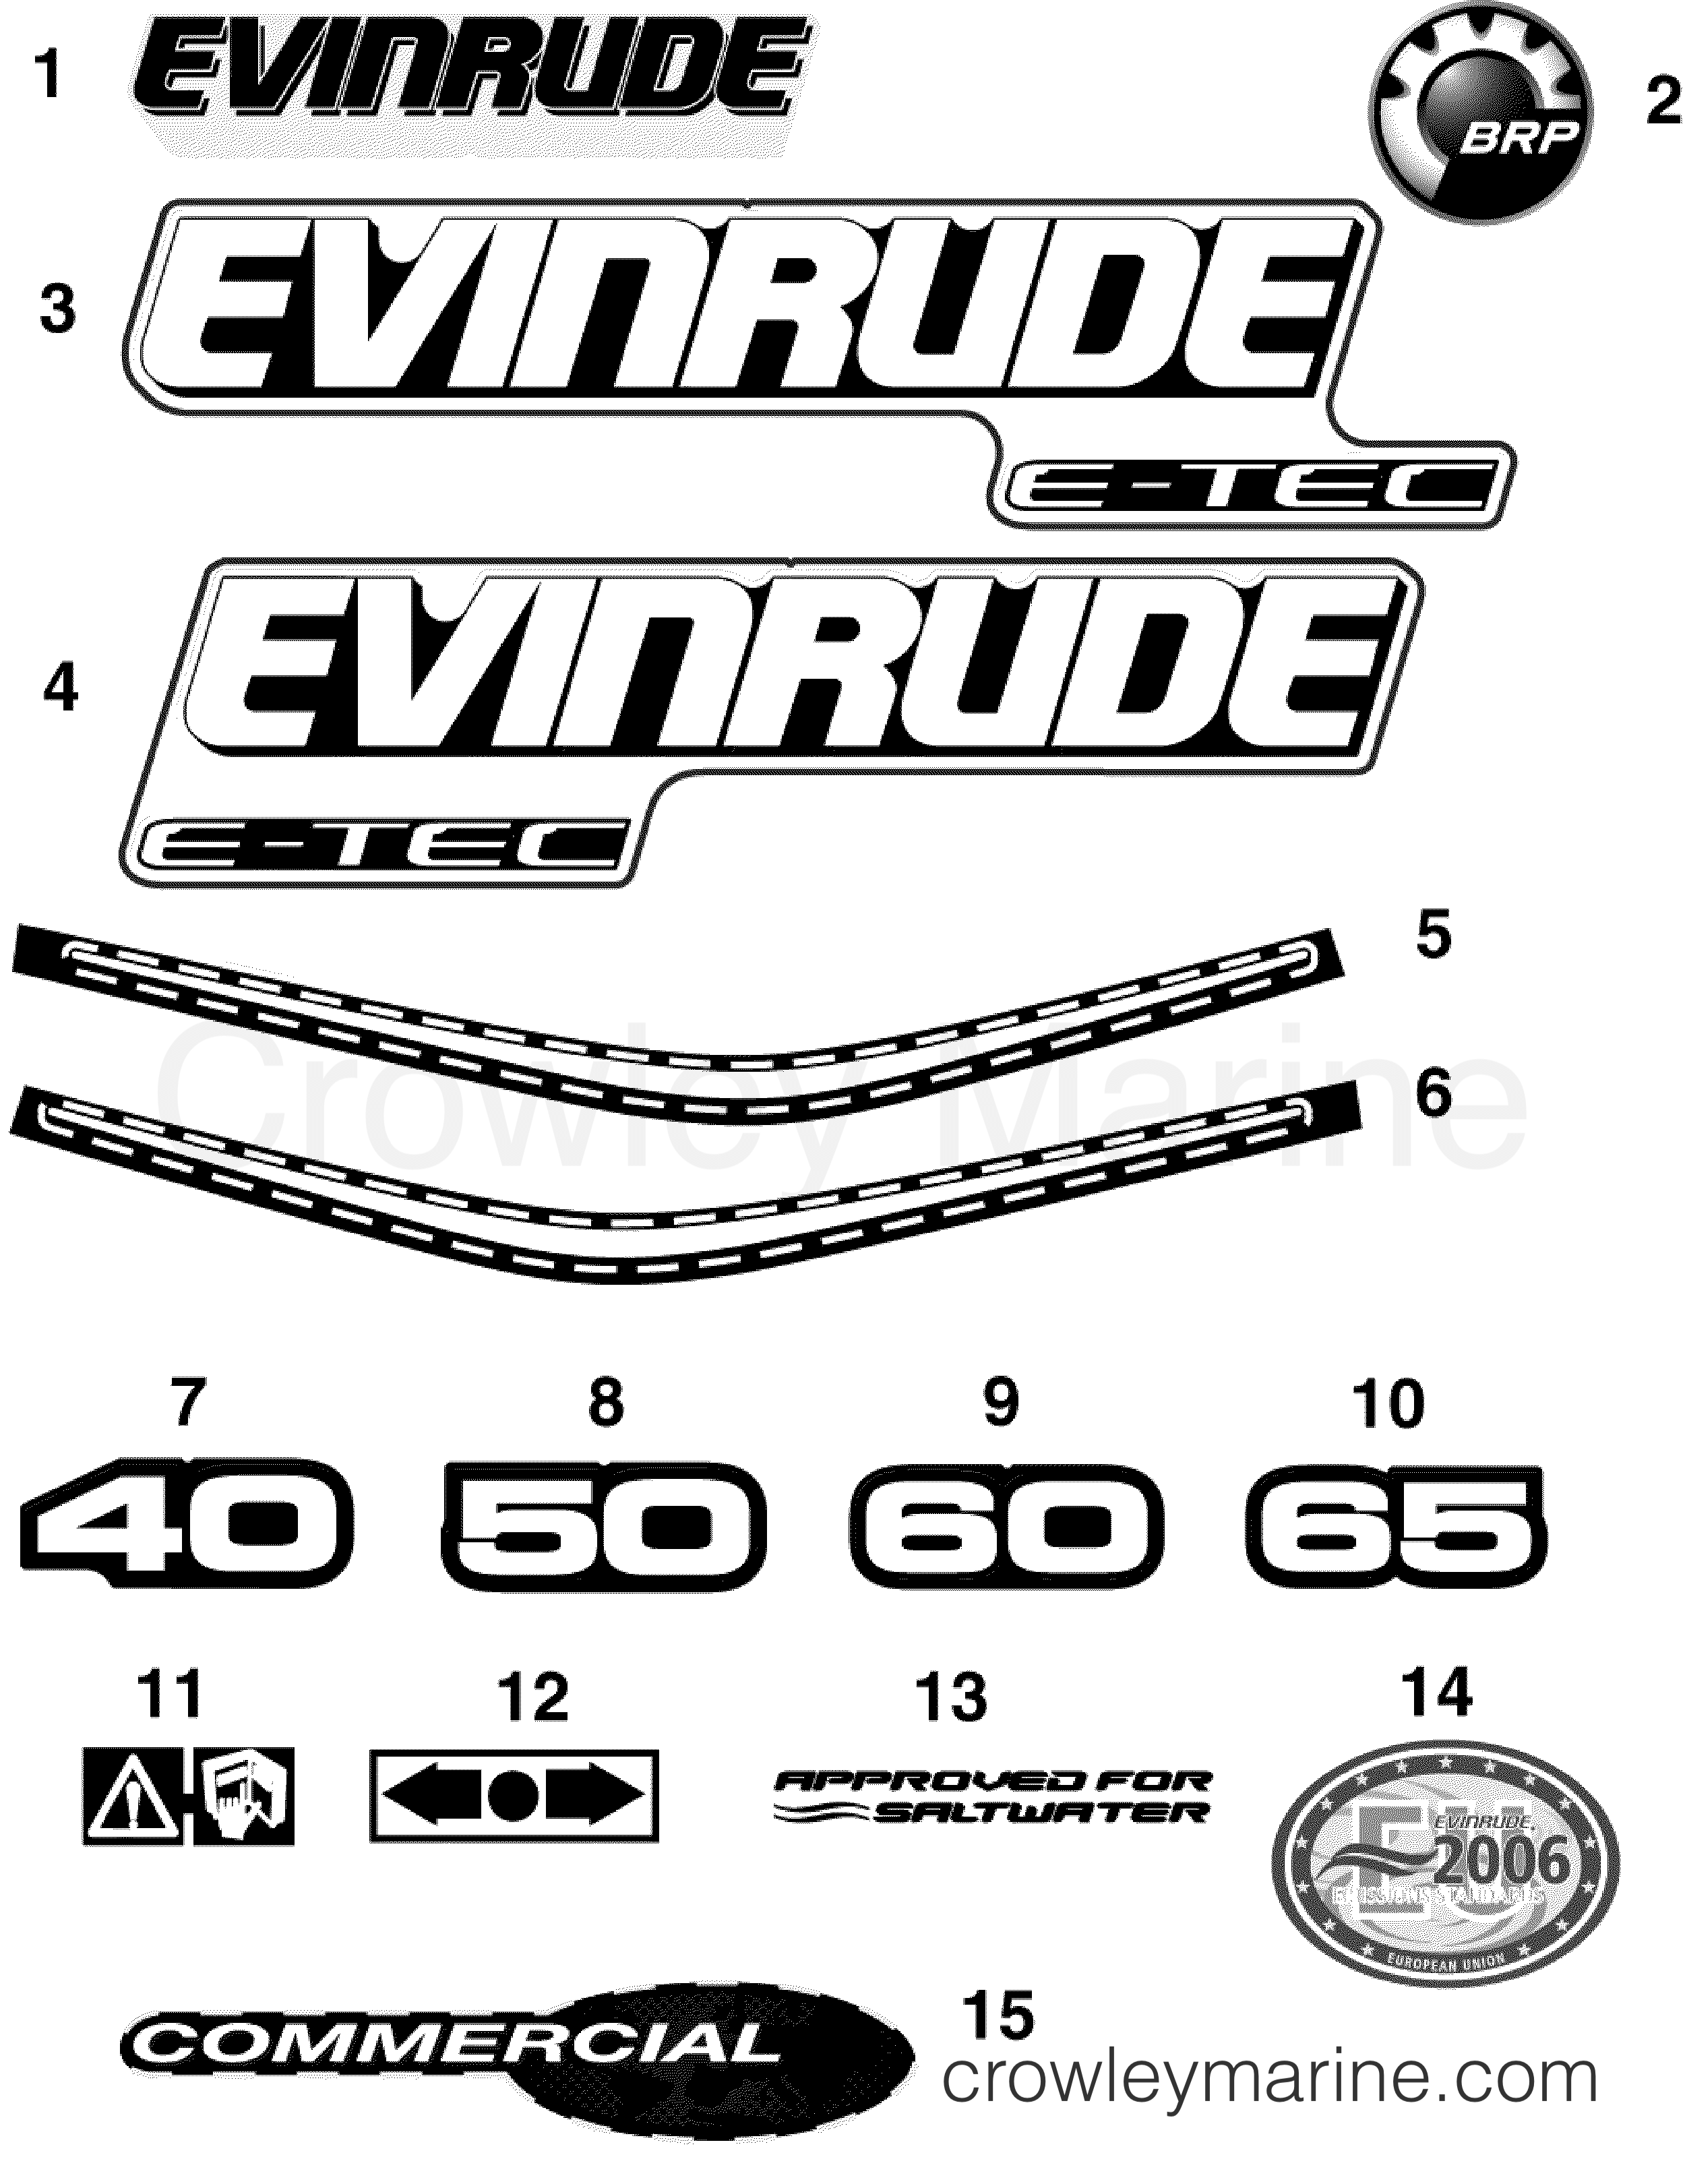 2010 Evinrude Outboards 40 - E40DPLISF DECALS section